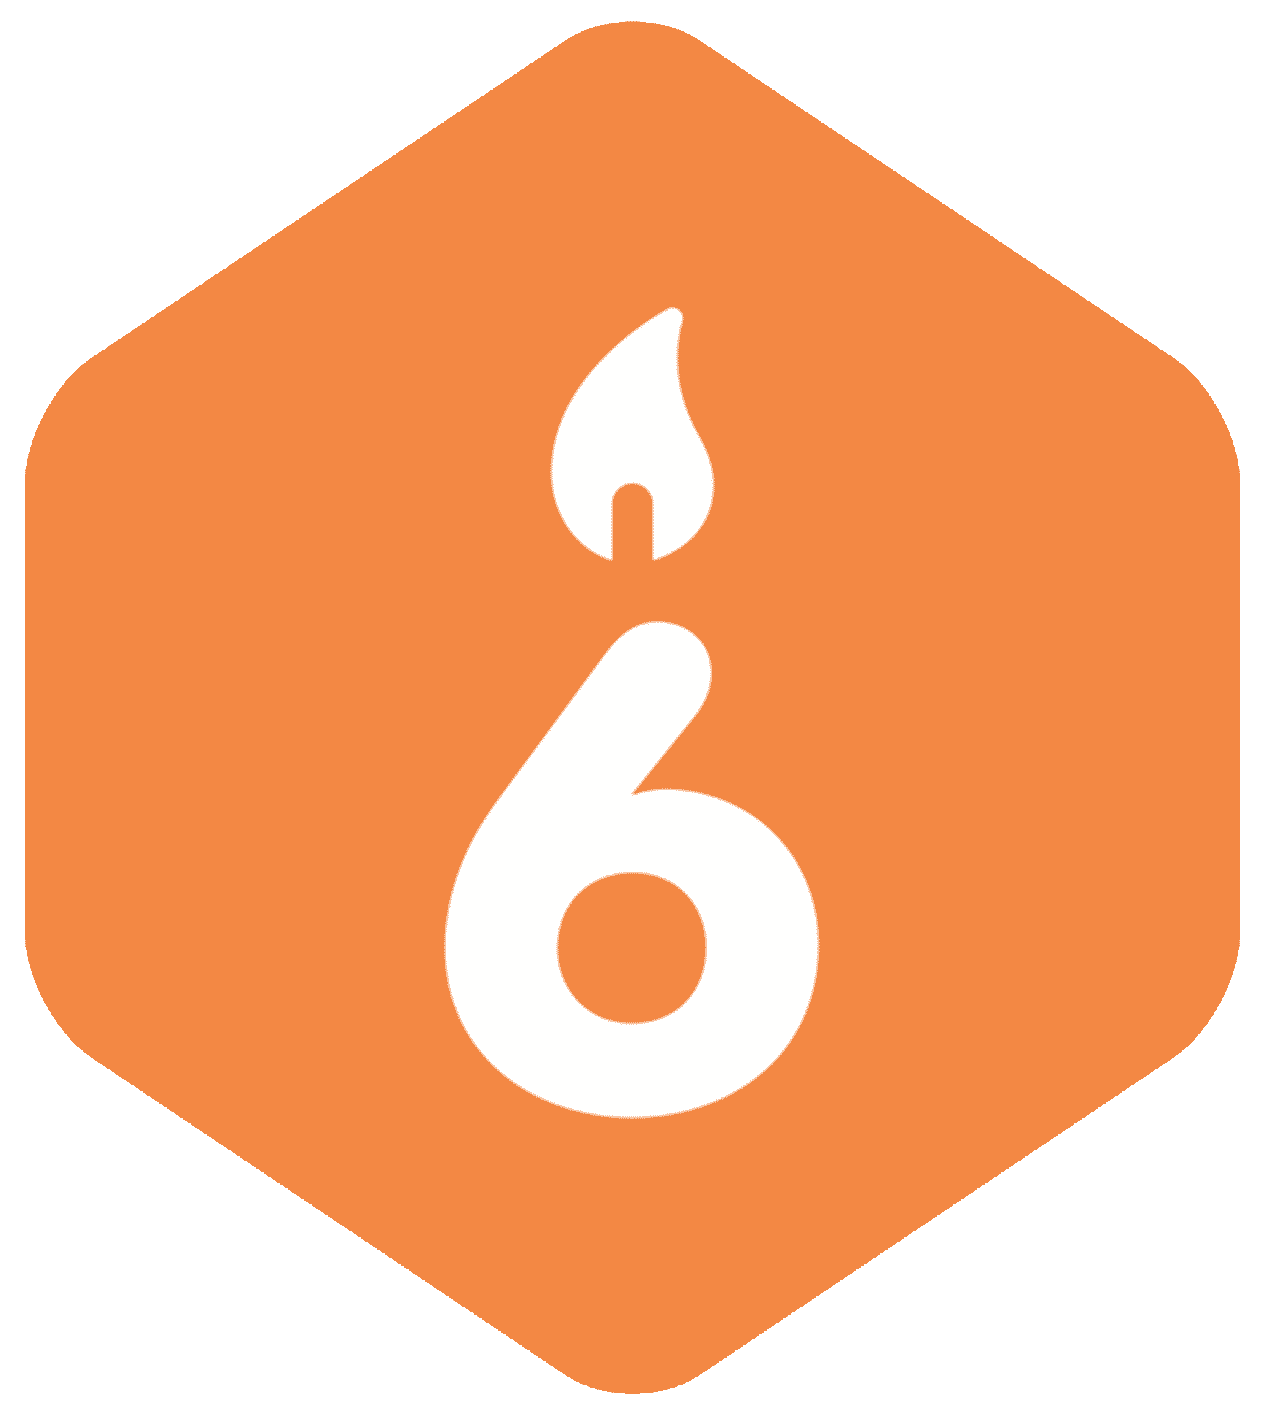 6 Years of Membership: Has been part of the Envato Community for over 6 years